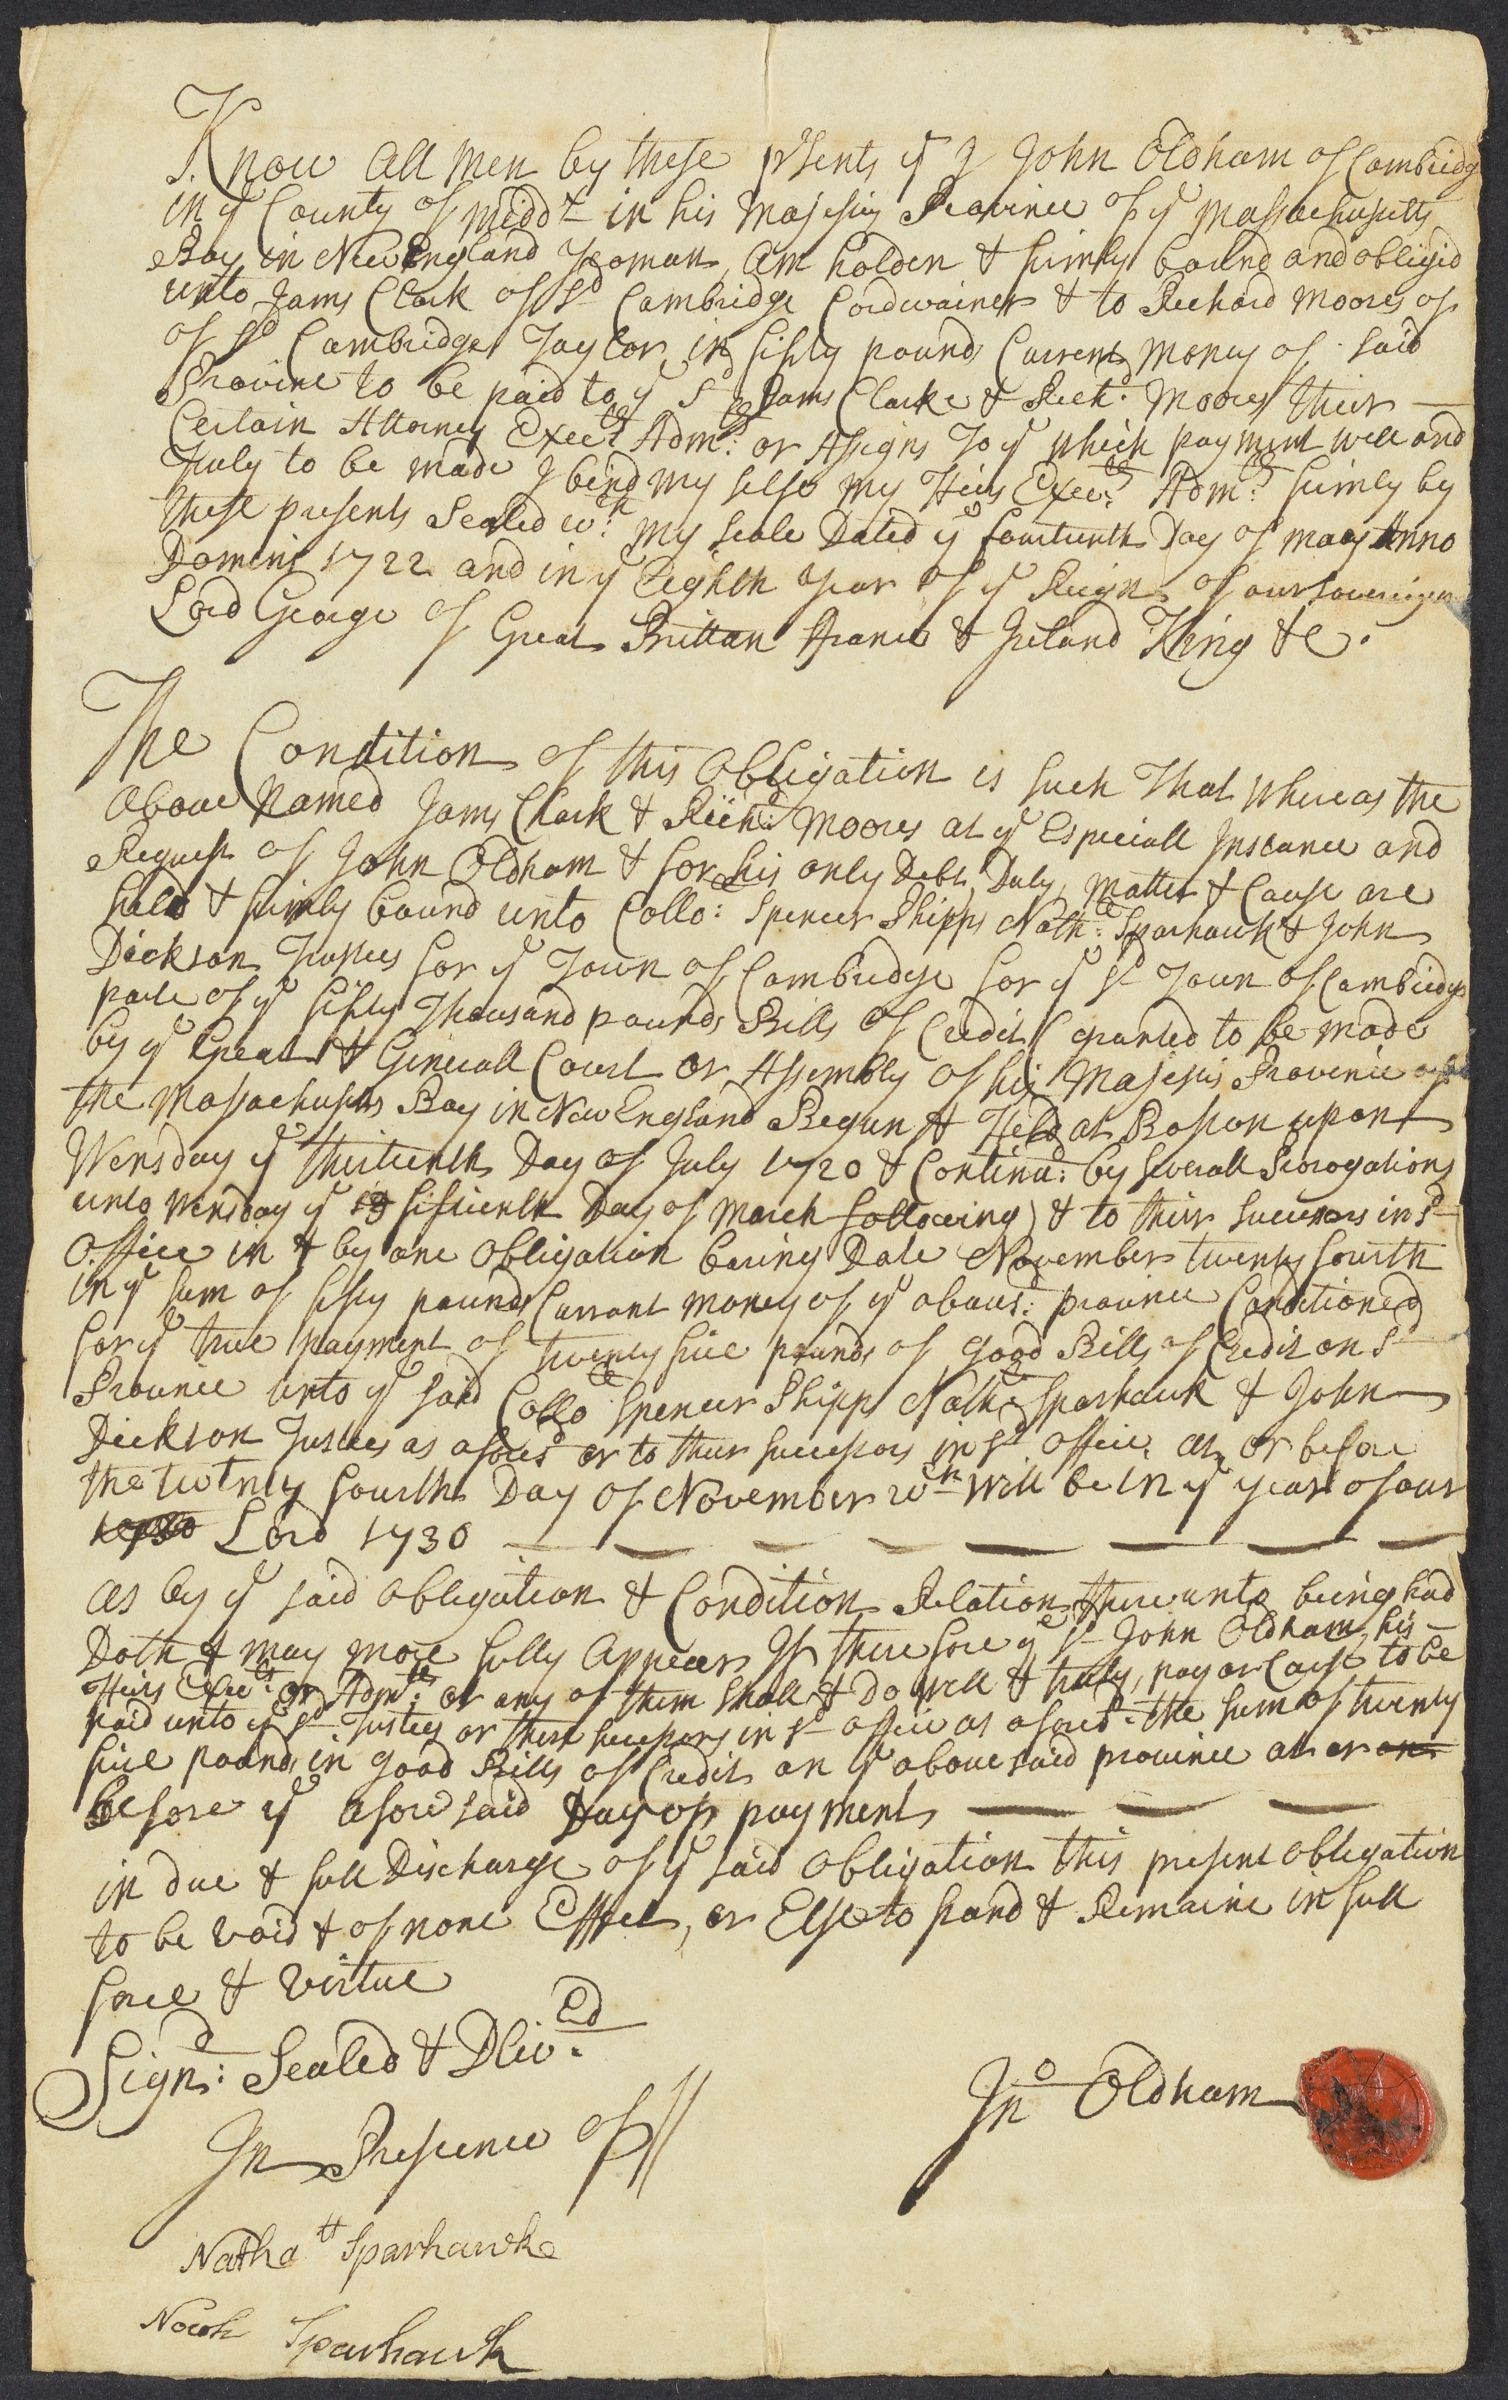 John Oldham counterbond to James Clarke & Richard Moores, 1722 May 14